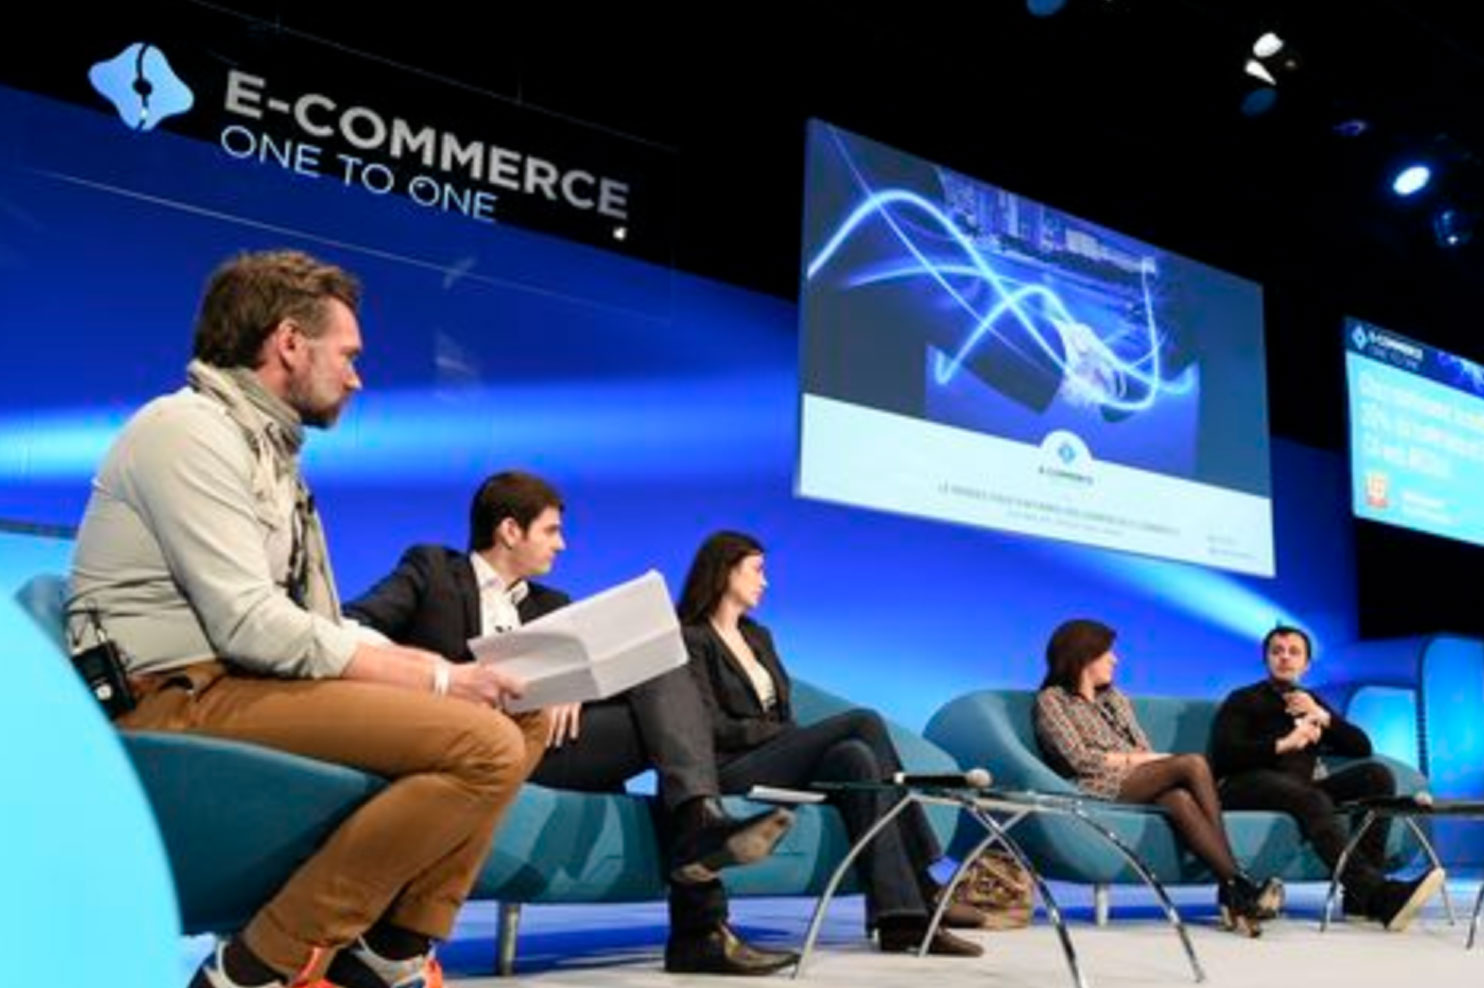 E-COMMERCE 1TO1 MONACO 2015